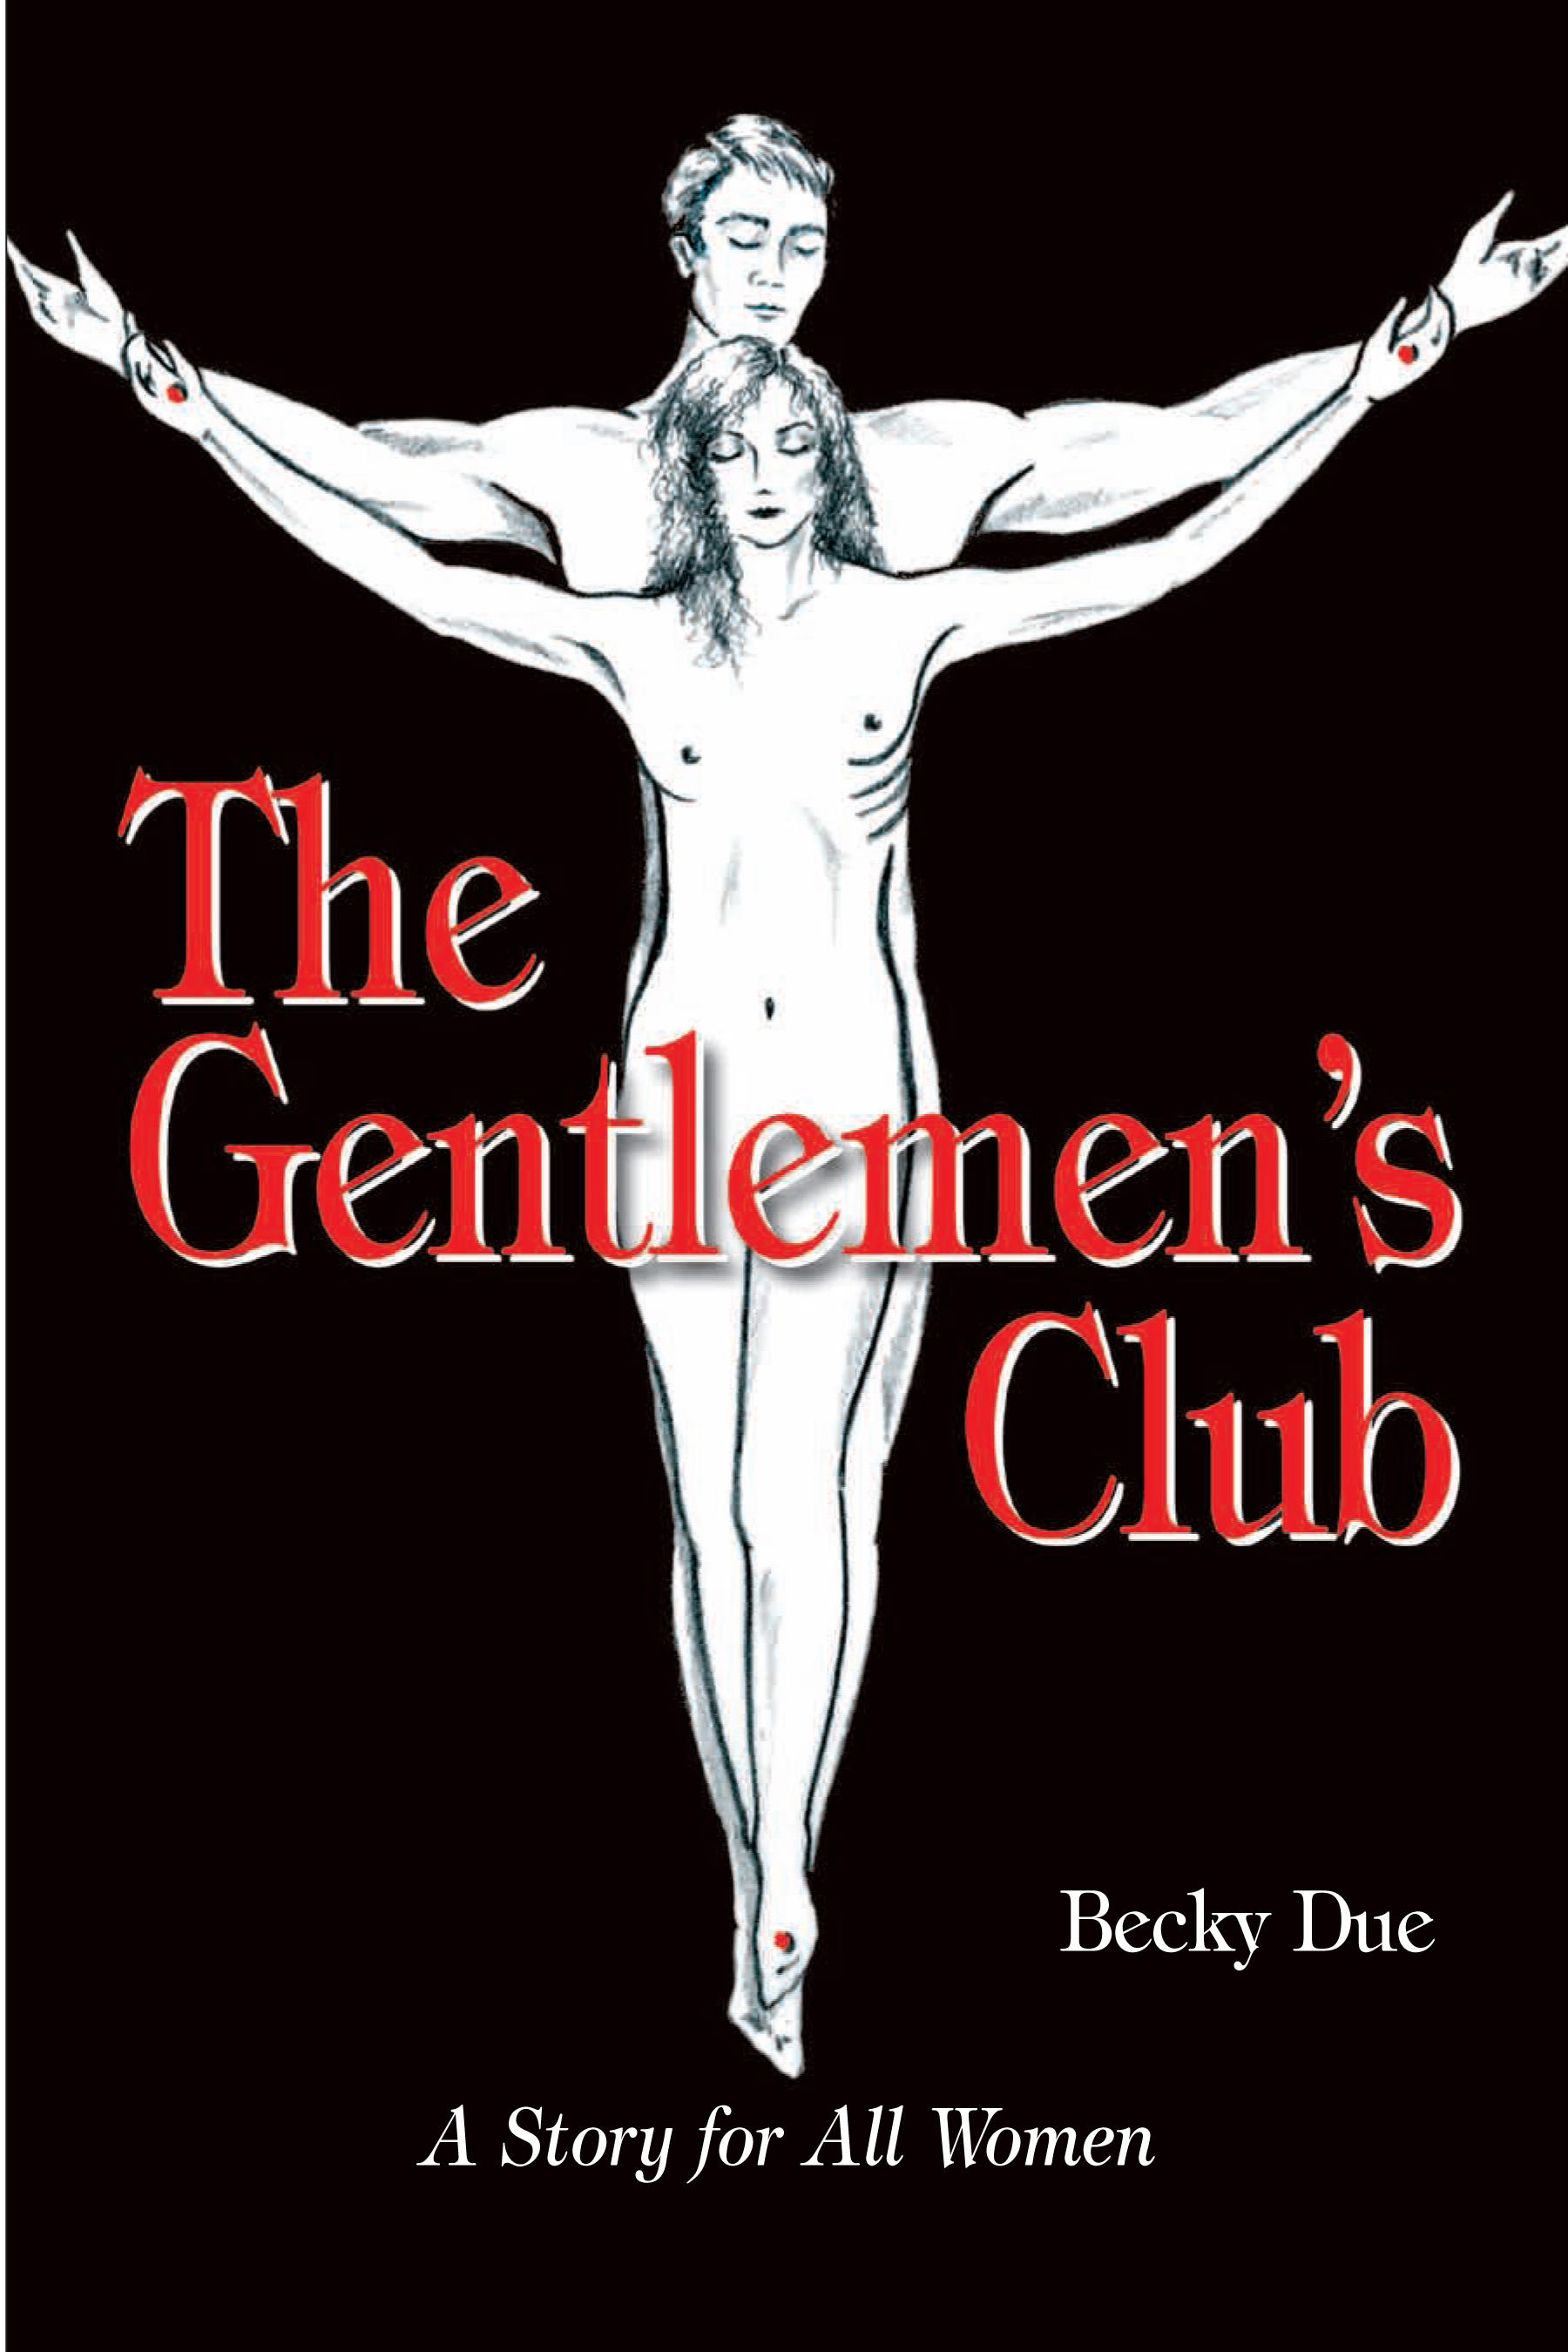 The Gentlemen's Club: A Story for All Women